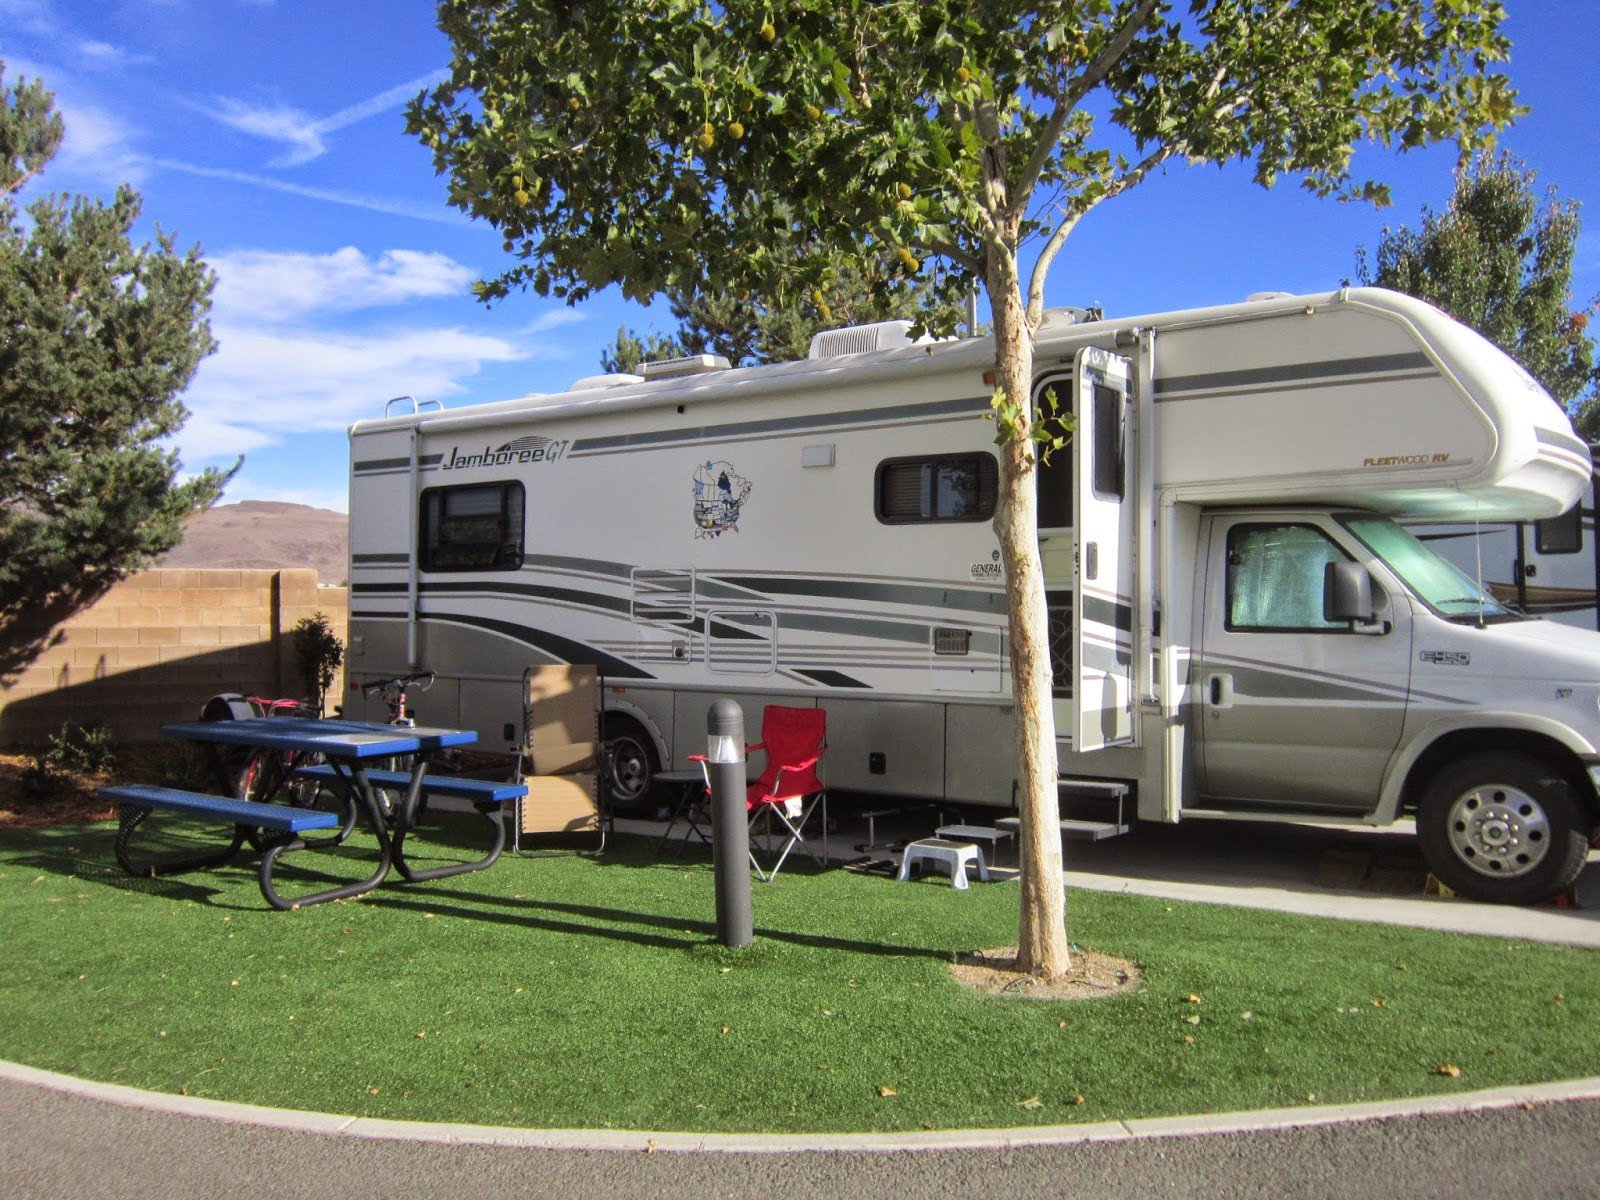 The First Week We Arrived At Sparks Marina RV Park Made A Trip To Reno About 10 Minutes Away After Walking Around Biggest Little City In World